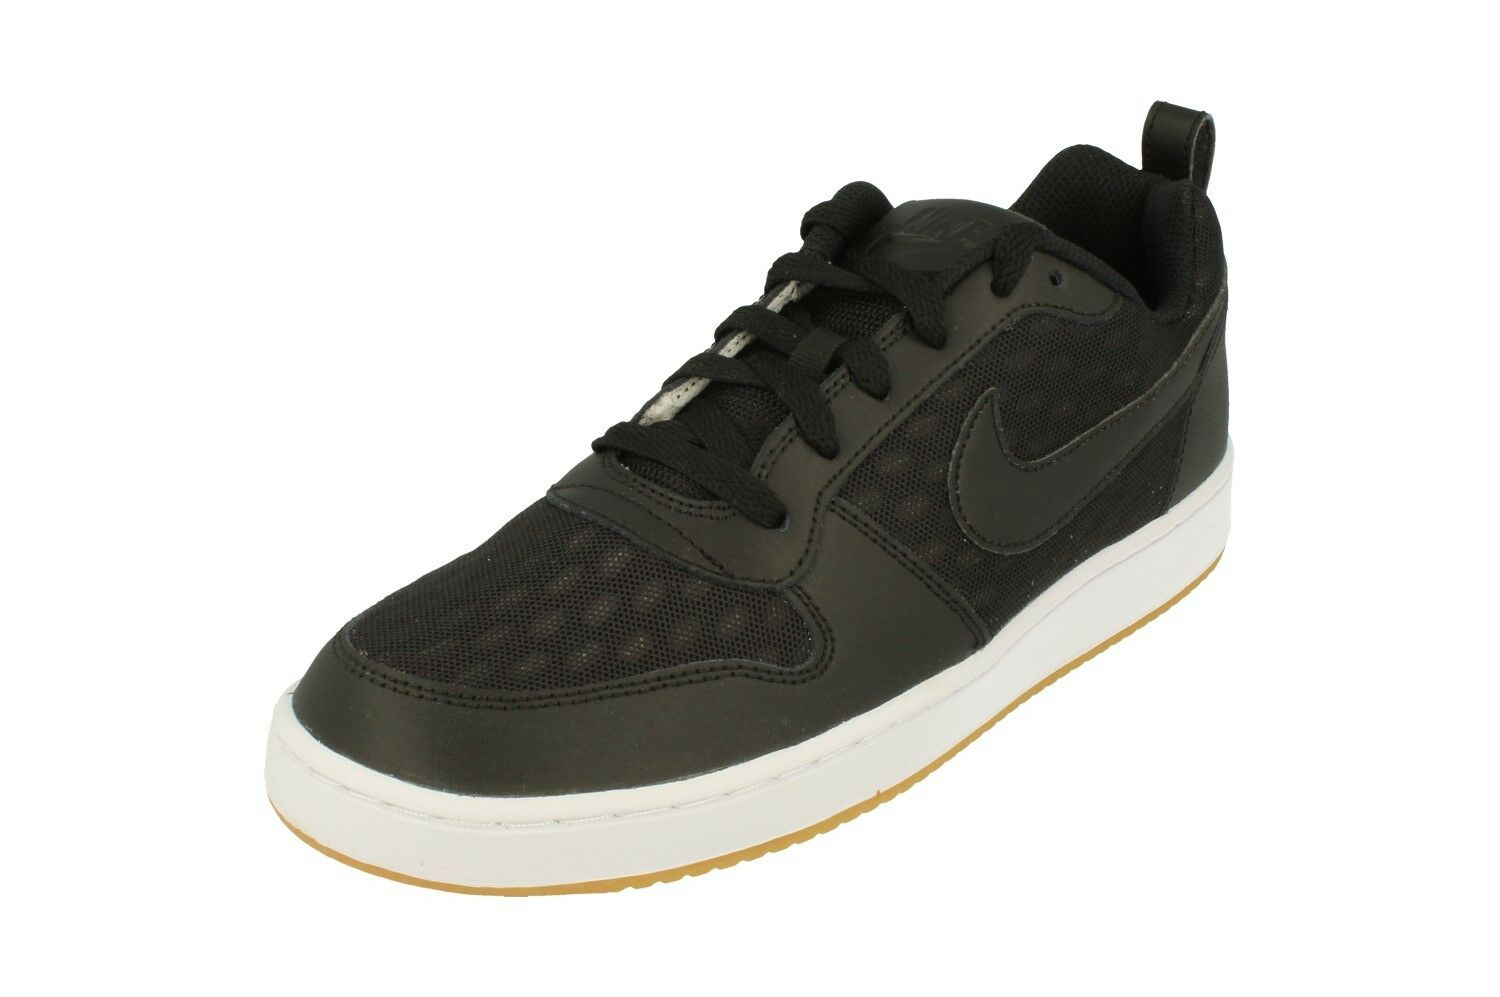 Nike Court Bgoldugh Low Se Mens Trainers 916760 Sneakers shoes 003